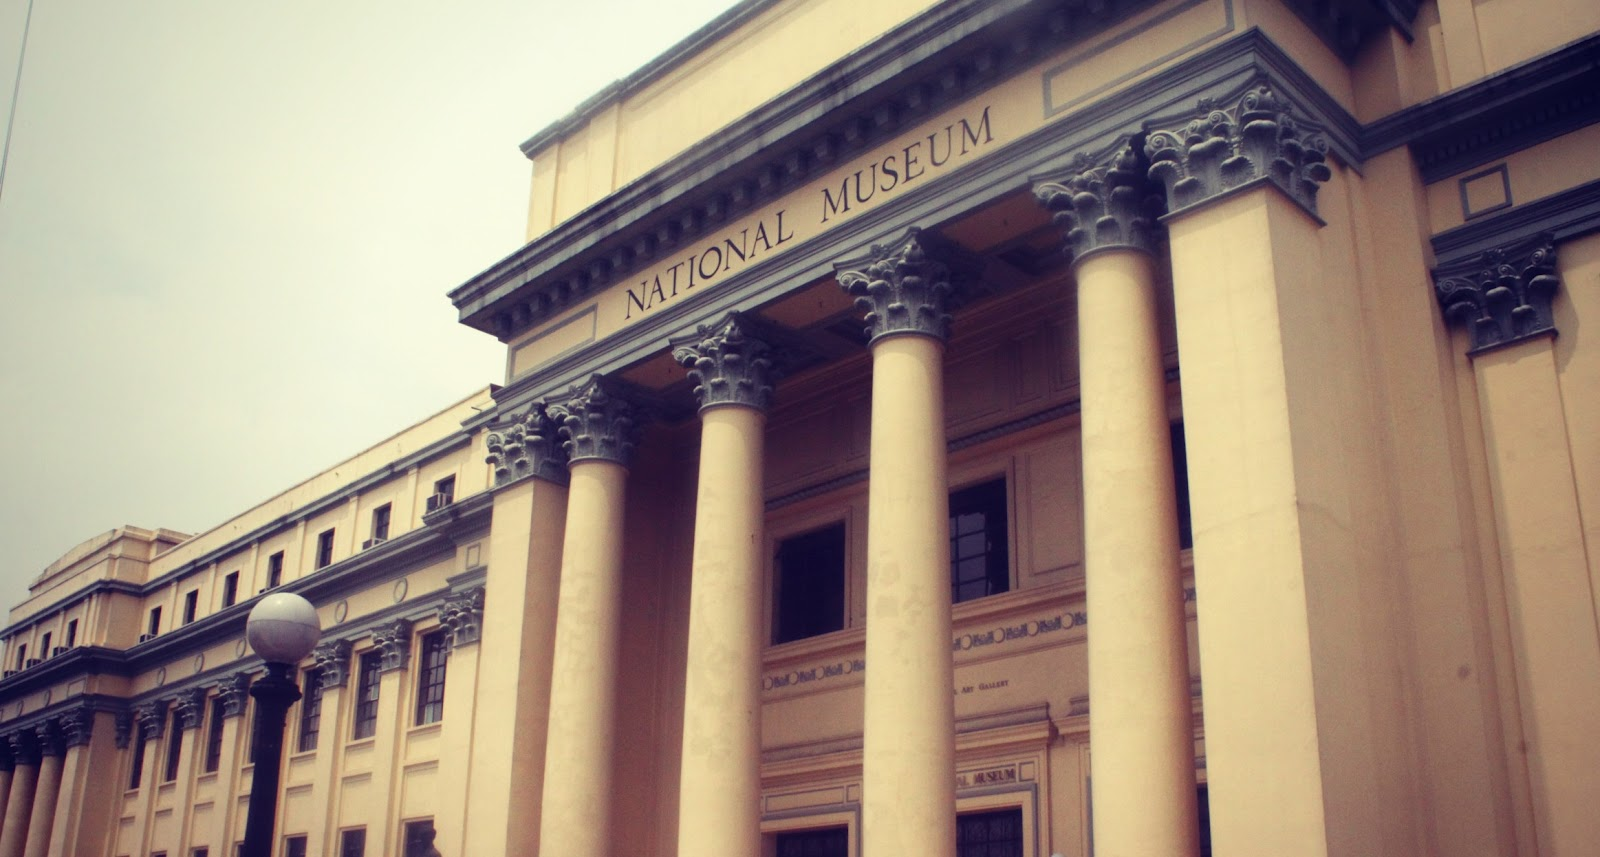 national museum of the philippines The national museum of the philippines is one of the most important tourist attractions in manila as it is the official home of the philippines' natural and cultural heritage it is the place where the national treasures can be found.